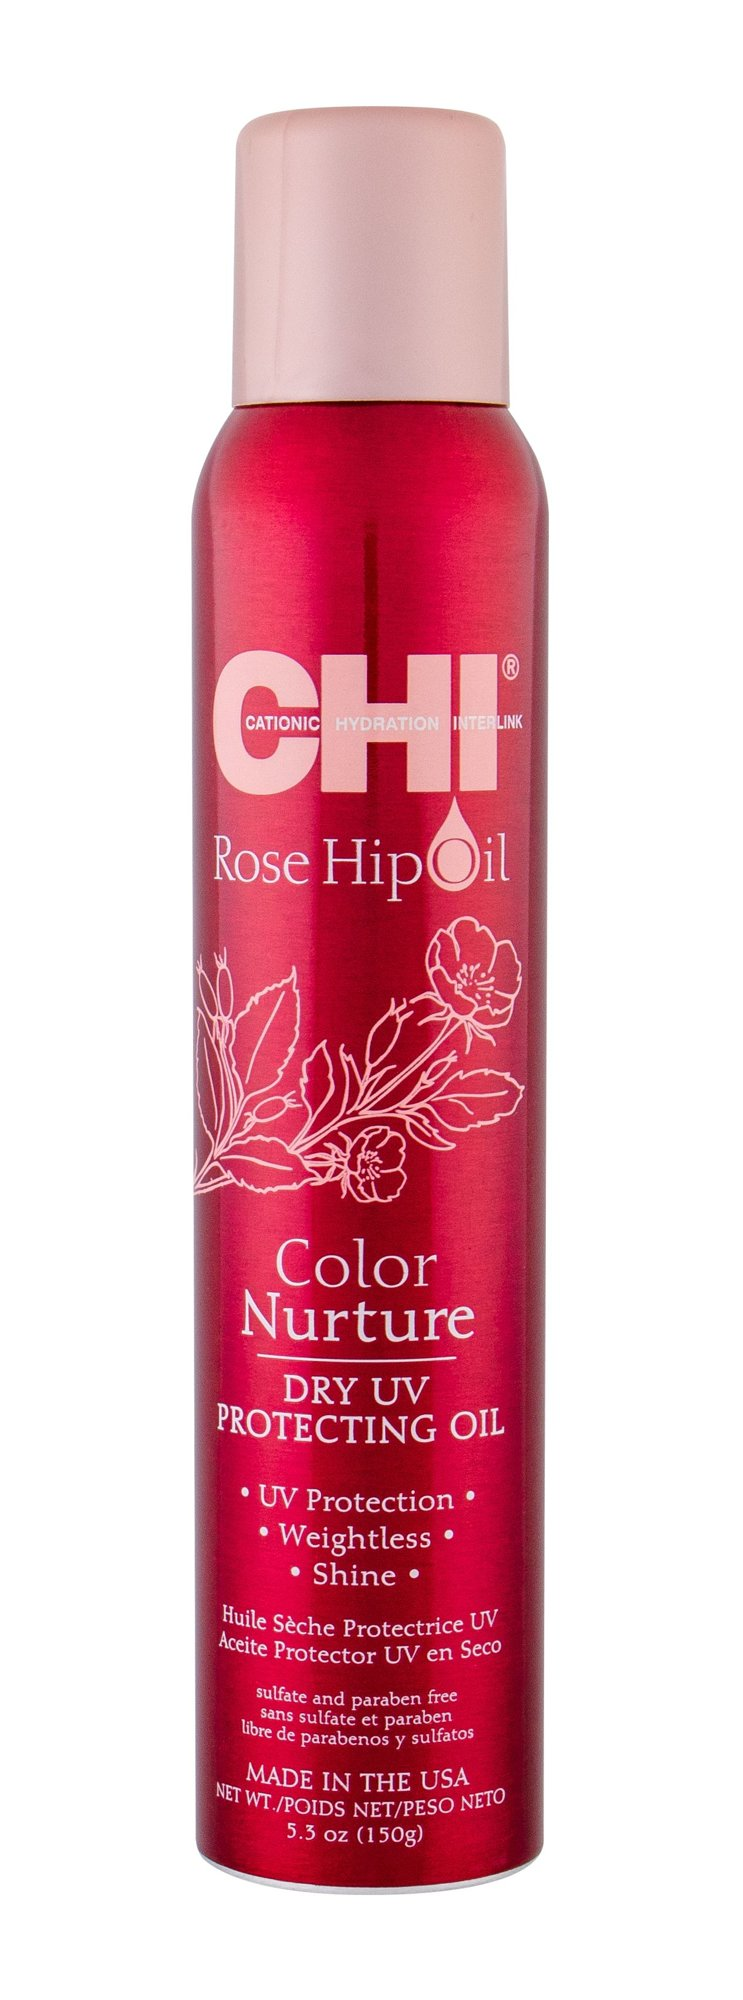 Farouk Systems CHI Rose Hip Oil Hair Oils and Serum 150ml